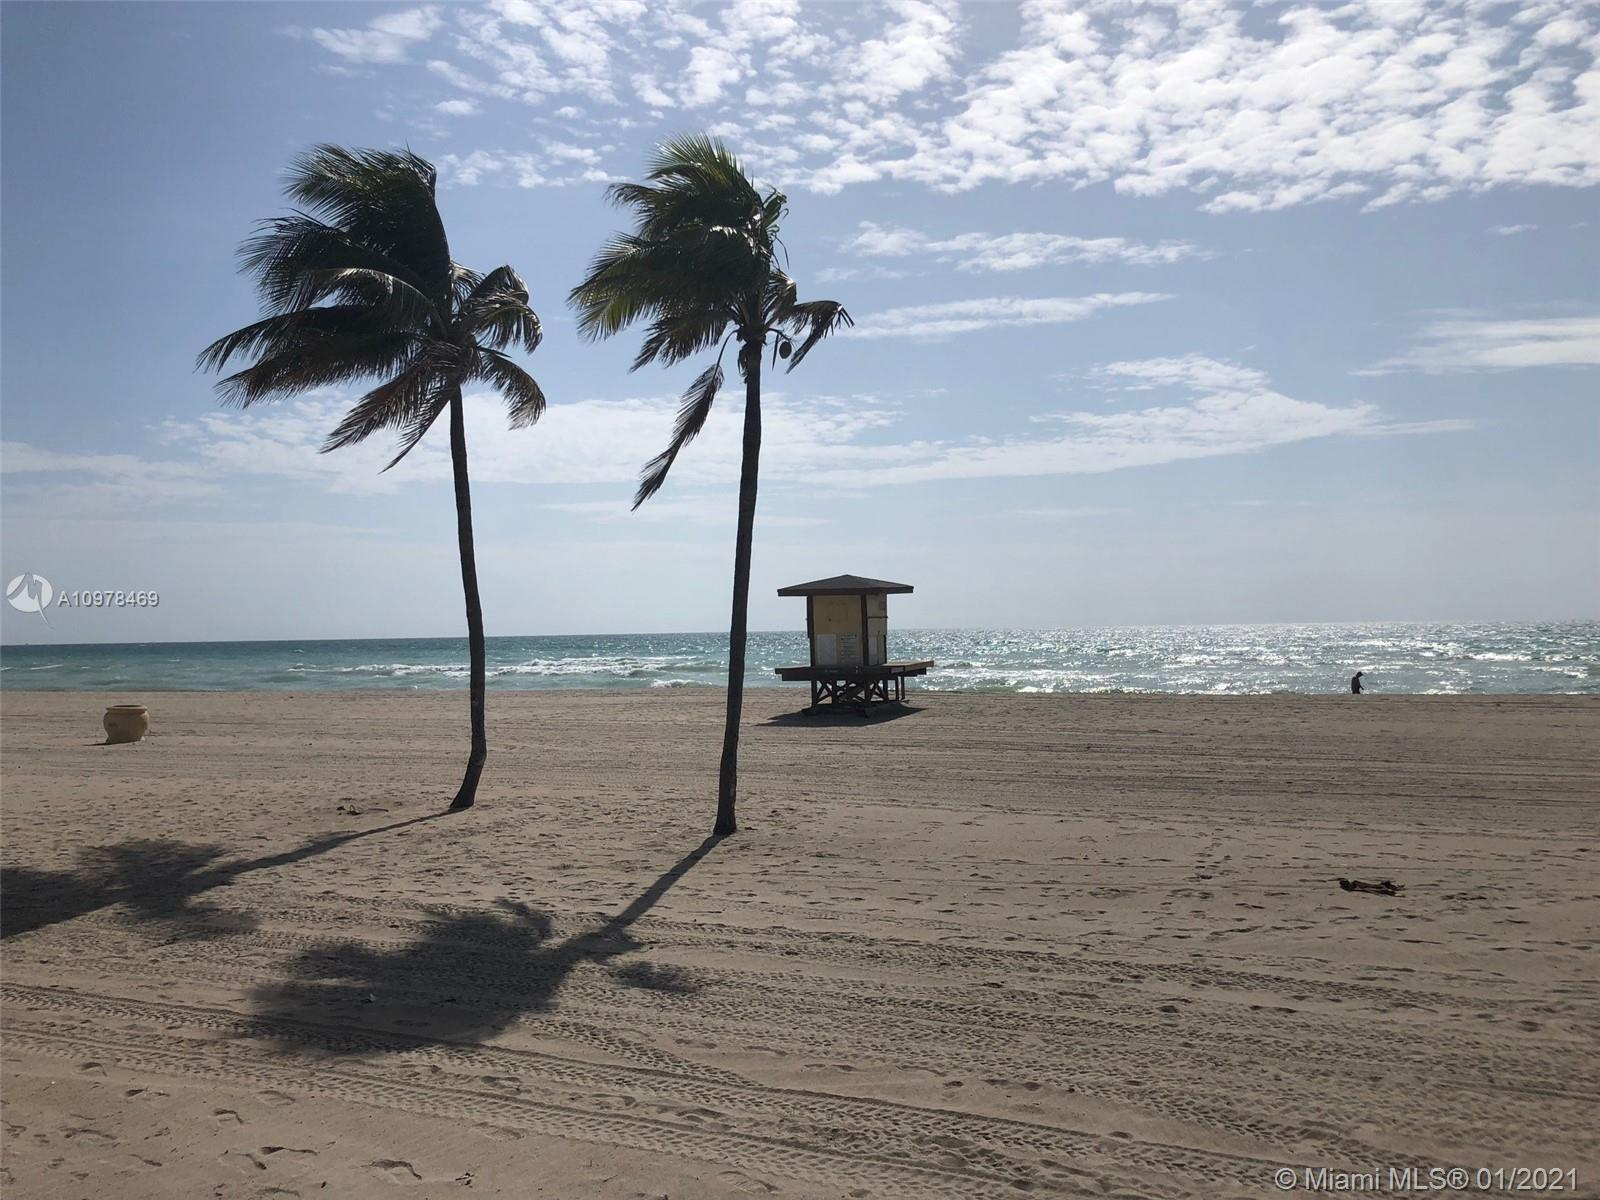 BEAUTIFUL UNIT WITH DIRECT OCEAN VIEWS. 2 BEDROOMS 2.5 BATHROOOMS +DEN. CAN BE EASILY TURNED INTO A